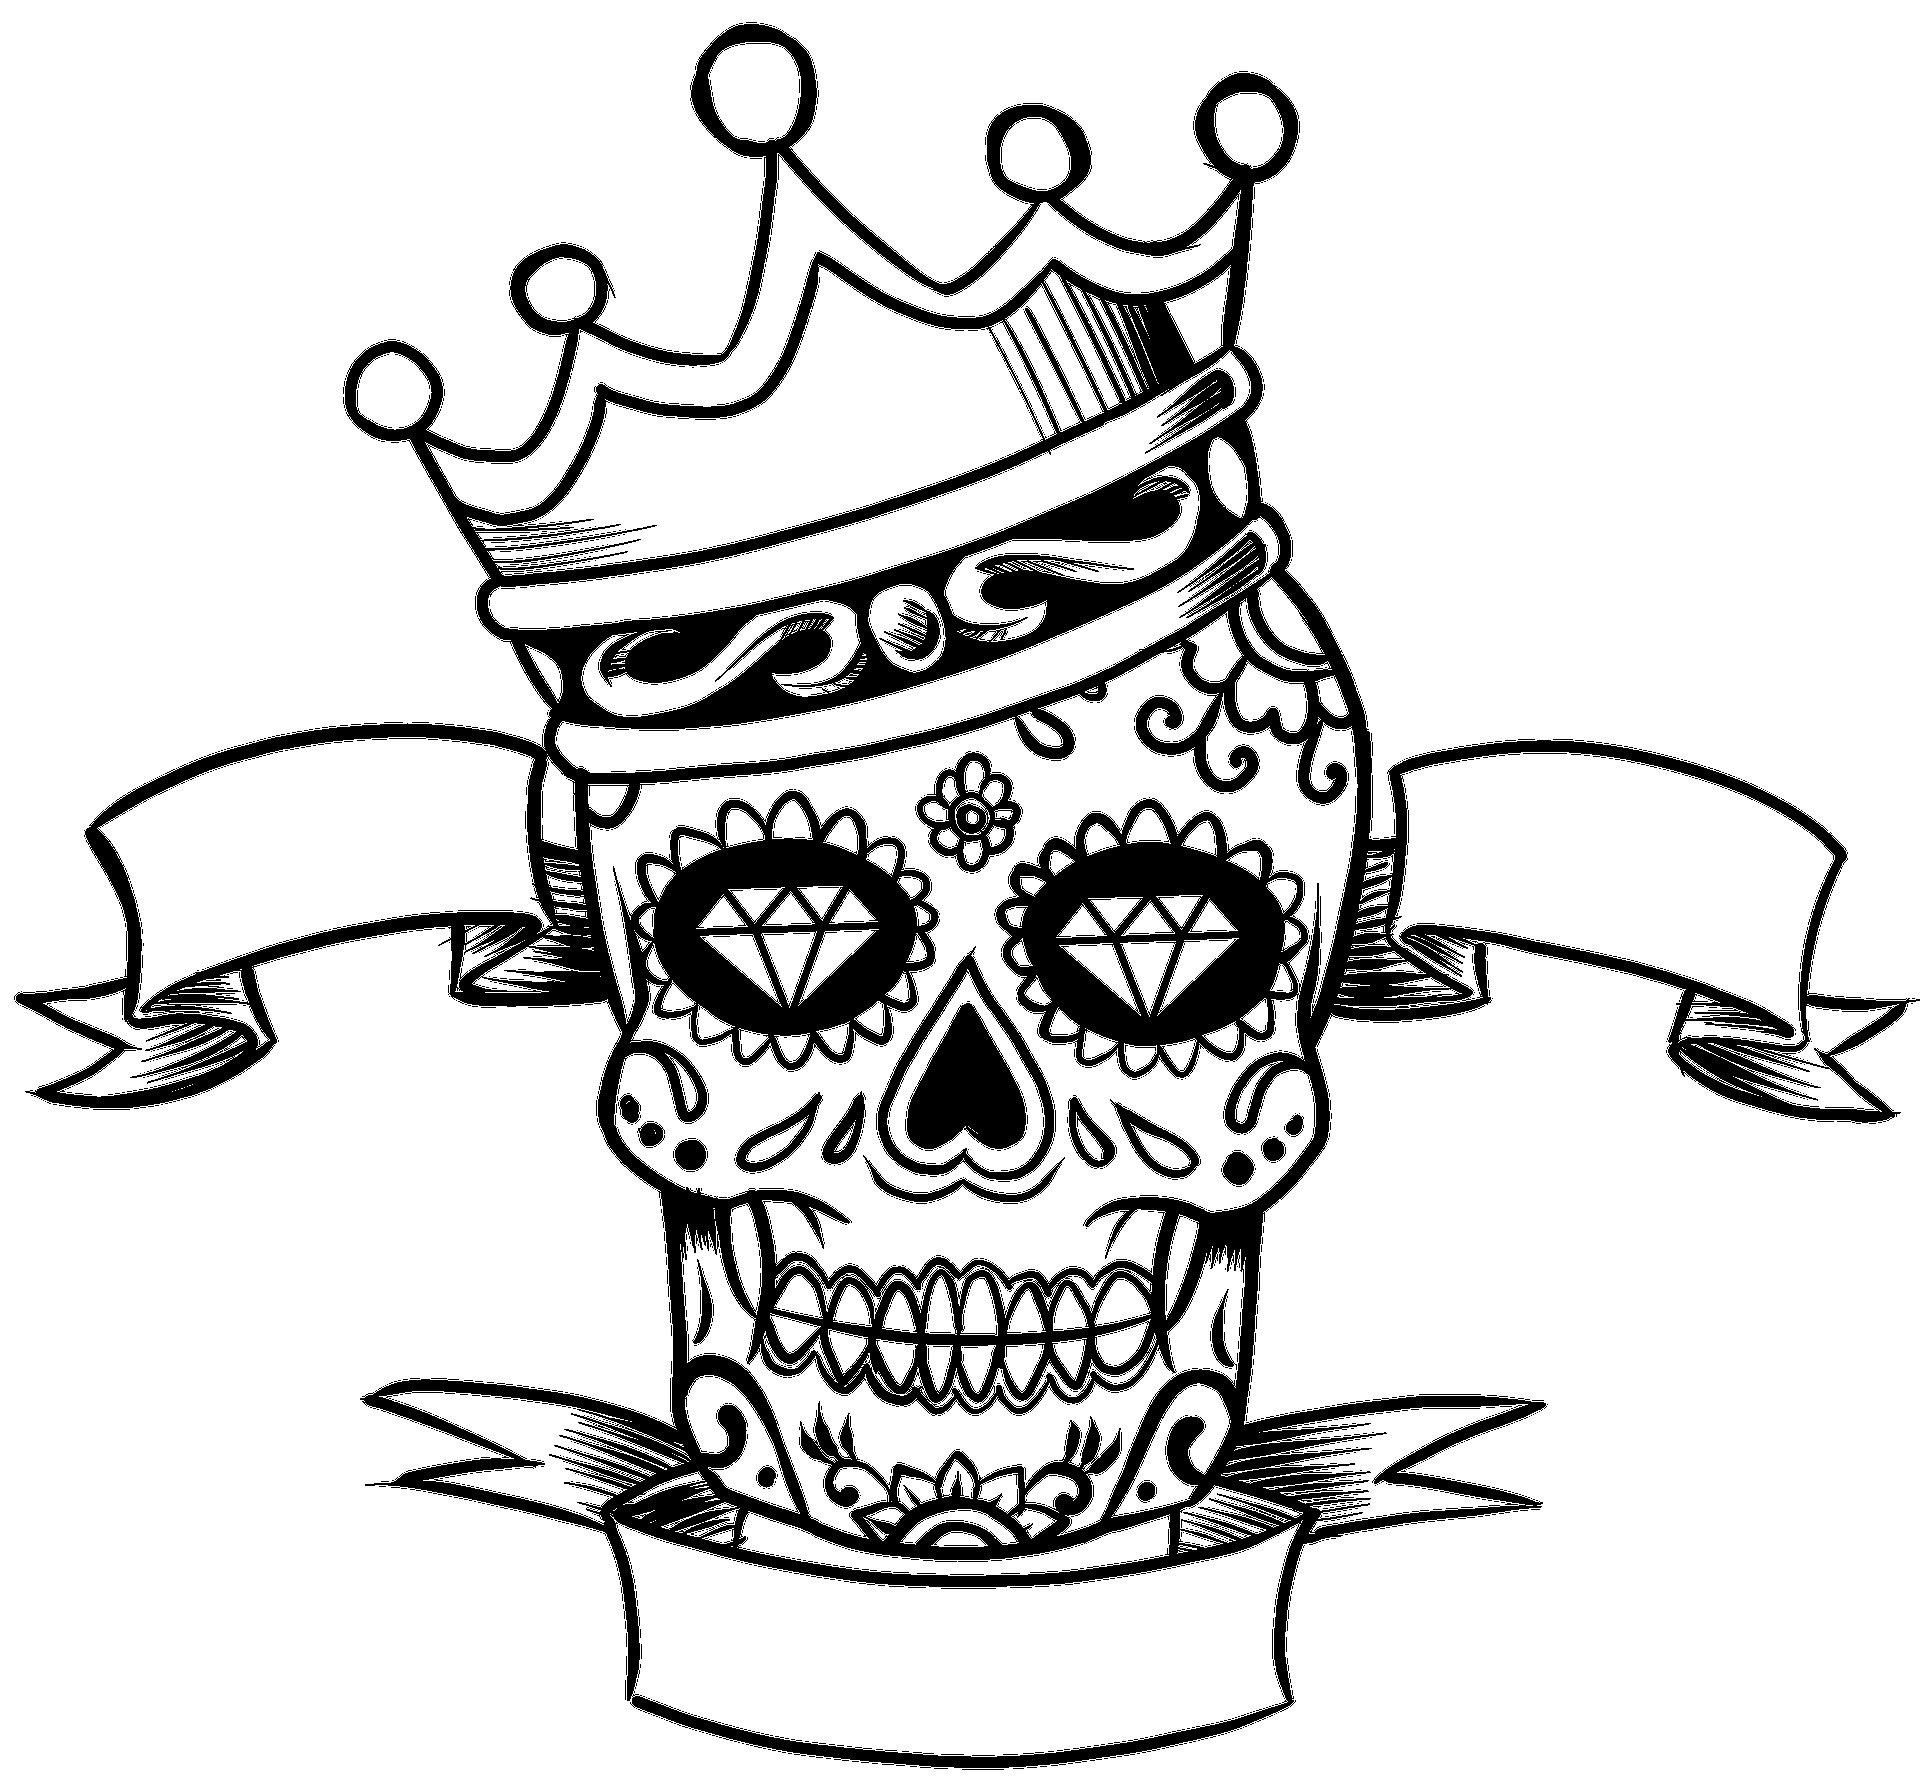 Coloring pages kids: King And Queen Coloring Sheet